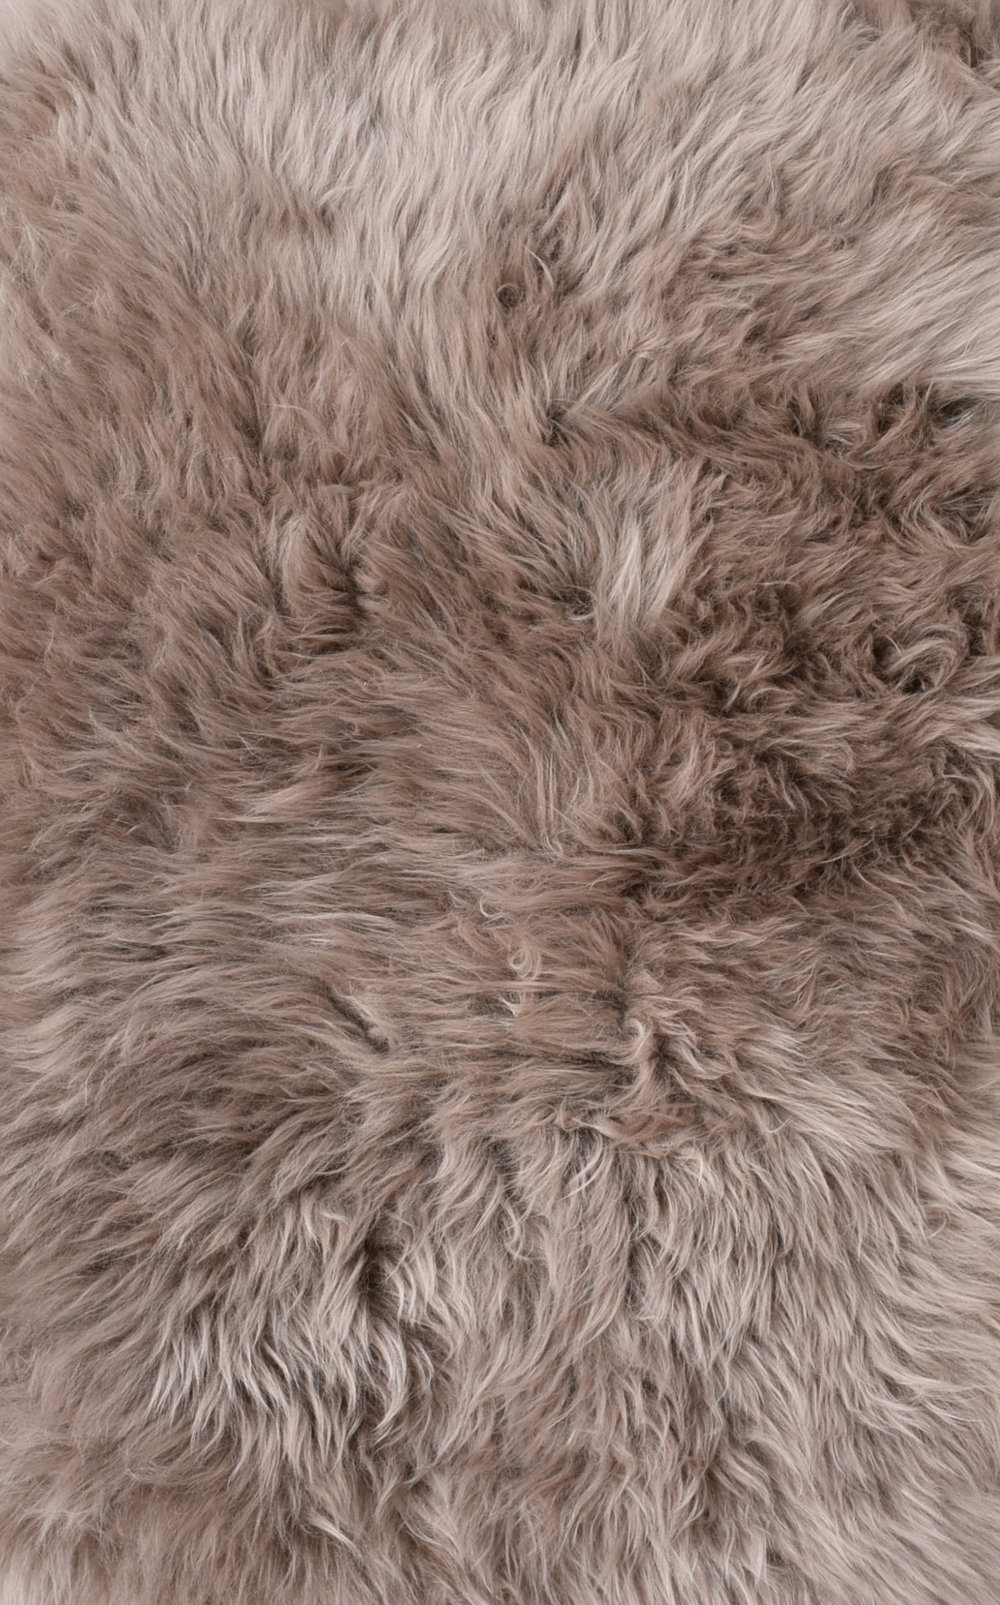 LONG HAIR SHEEPSKIN I GREY STONE